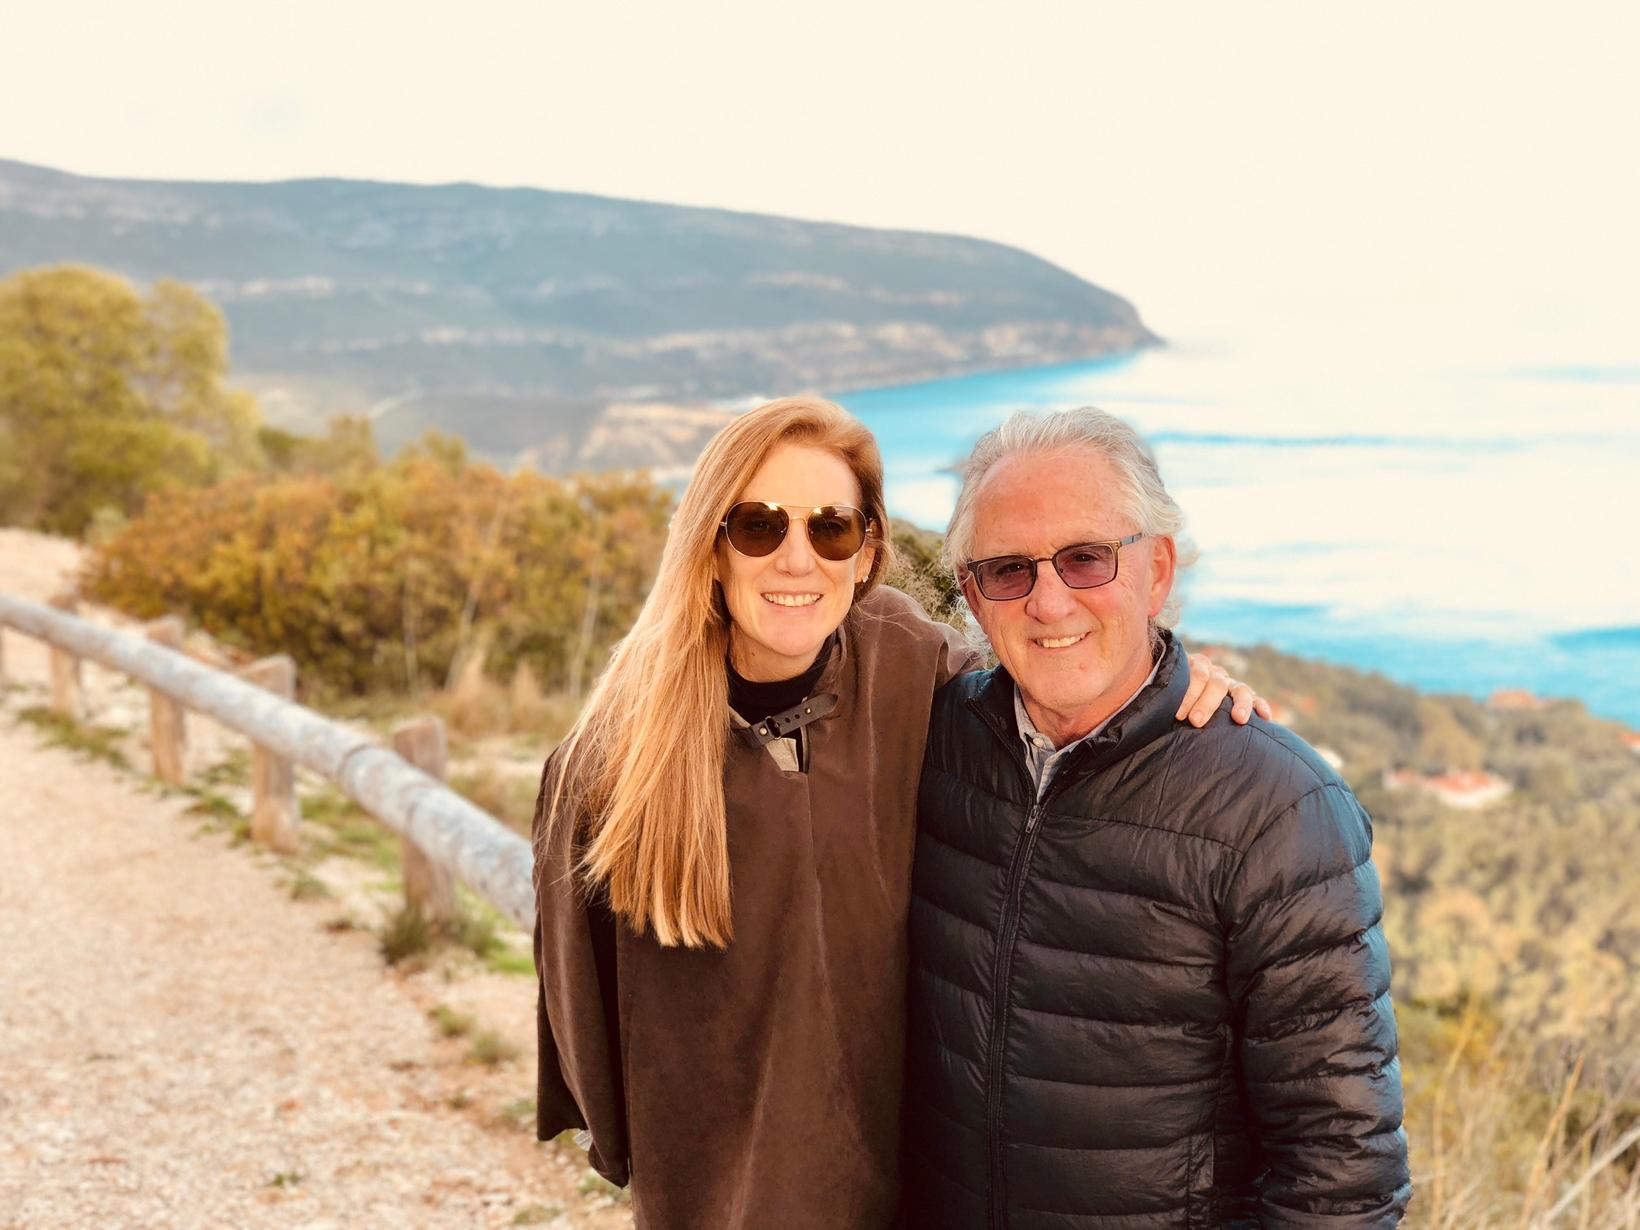 Laurie & Michael from Napa, California, United States